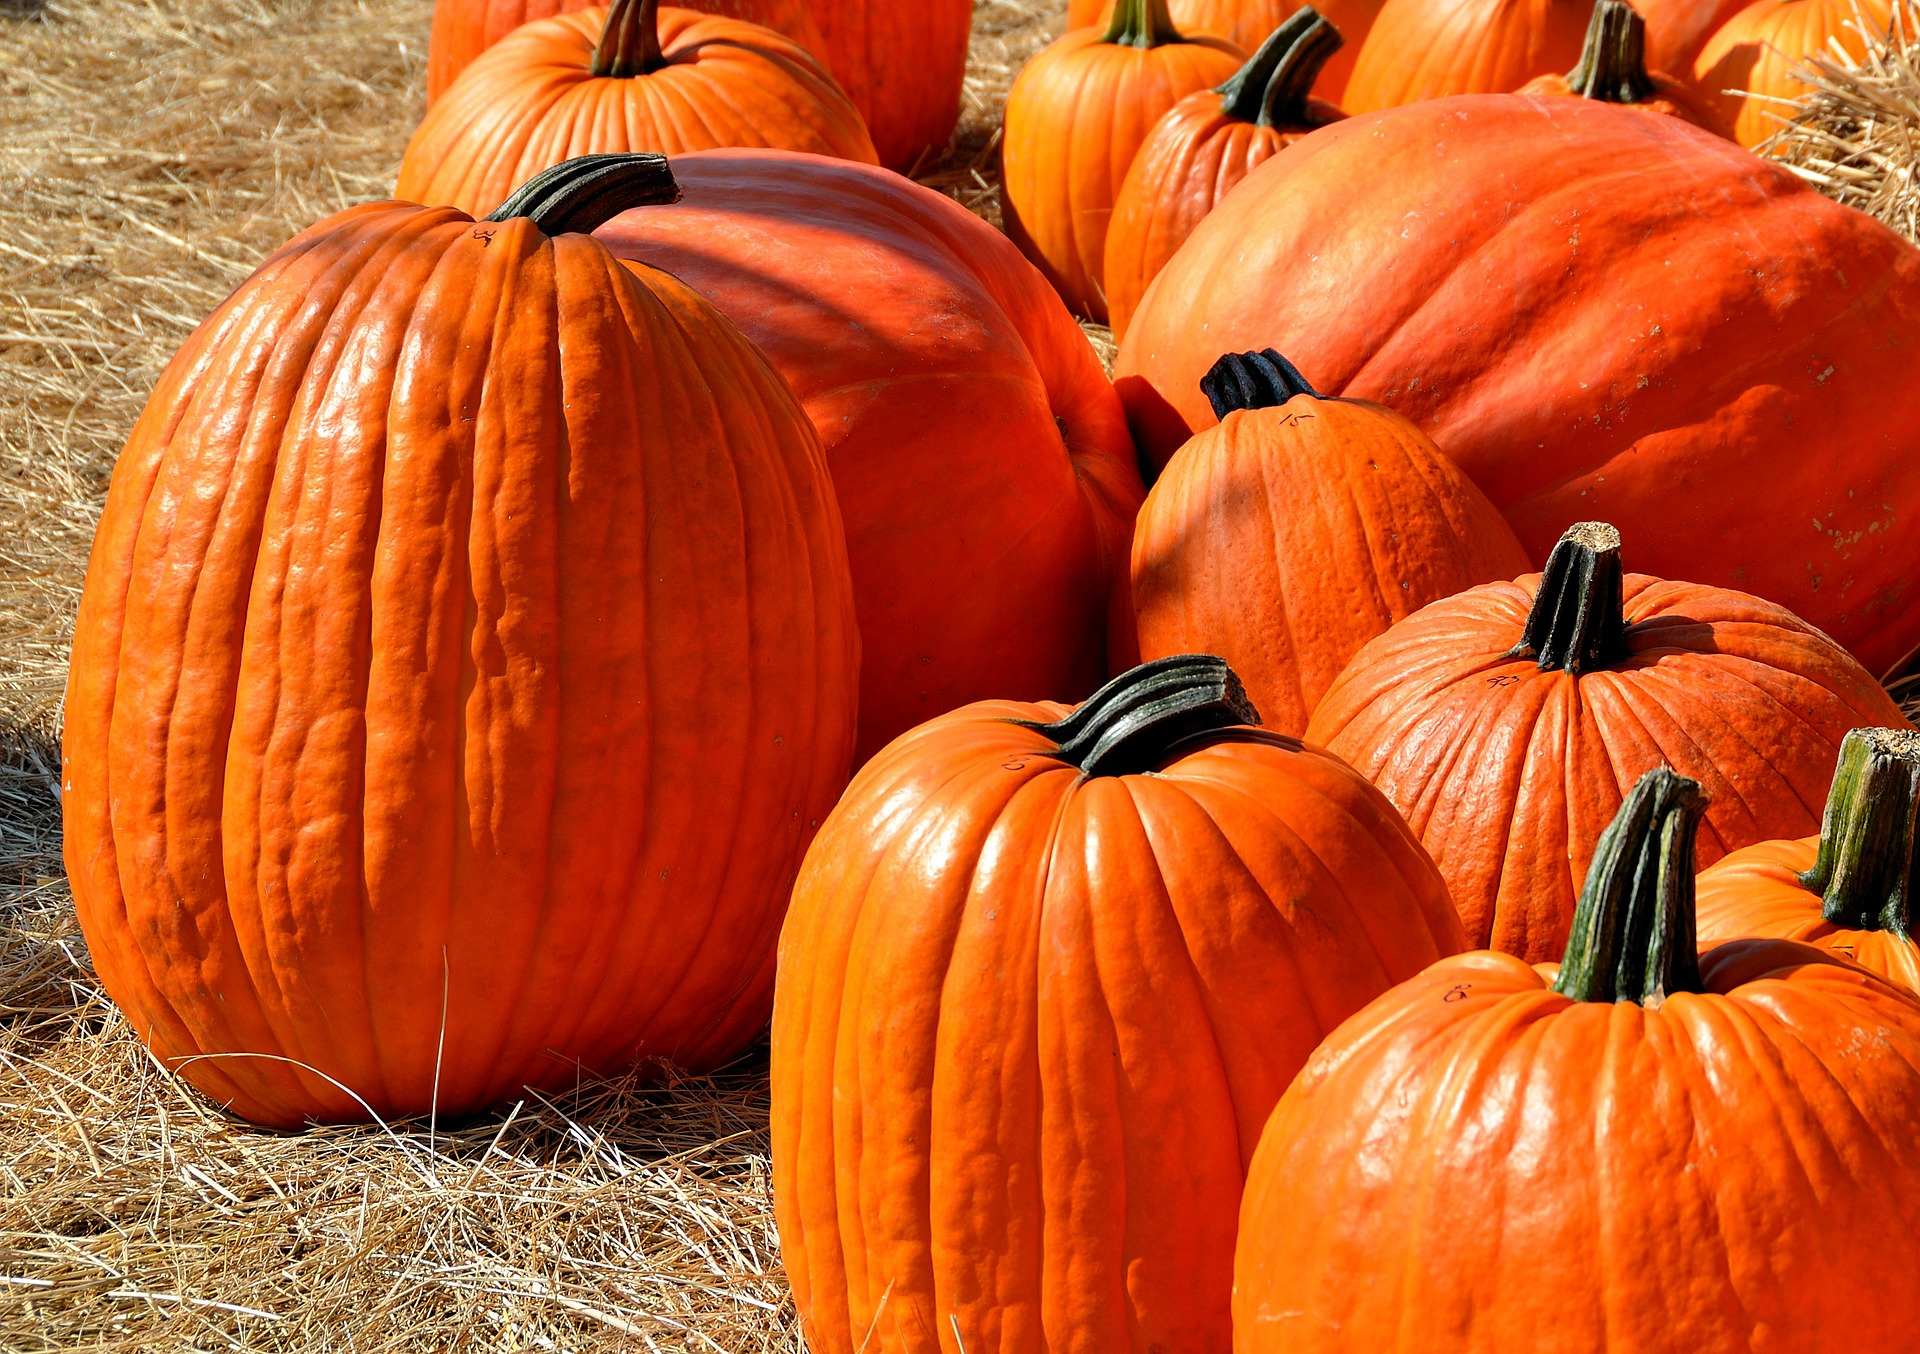 120 Events Celebrating Fall And Halloween In Columbus